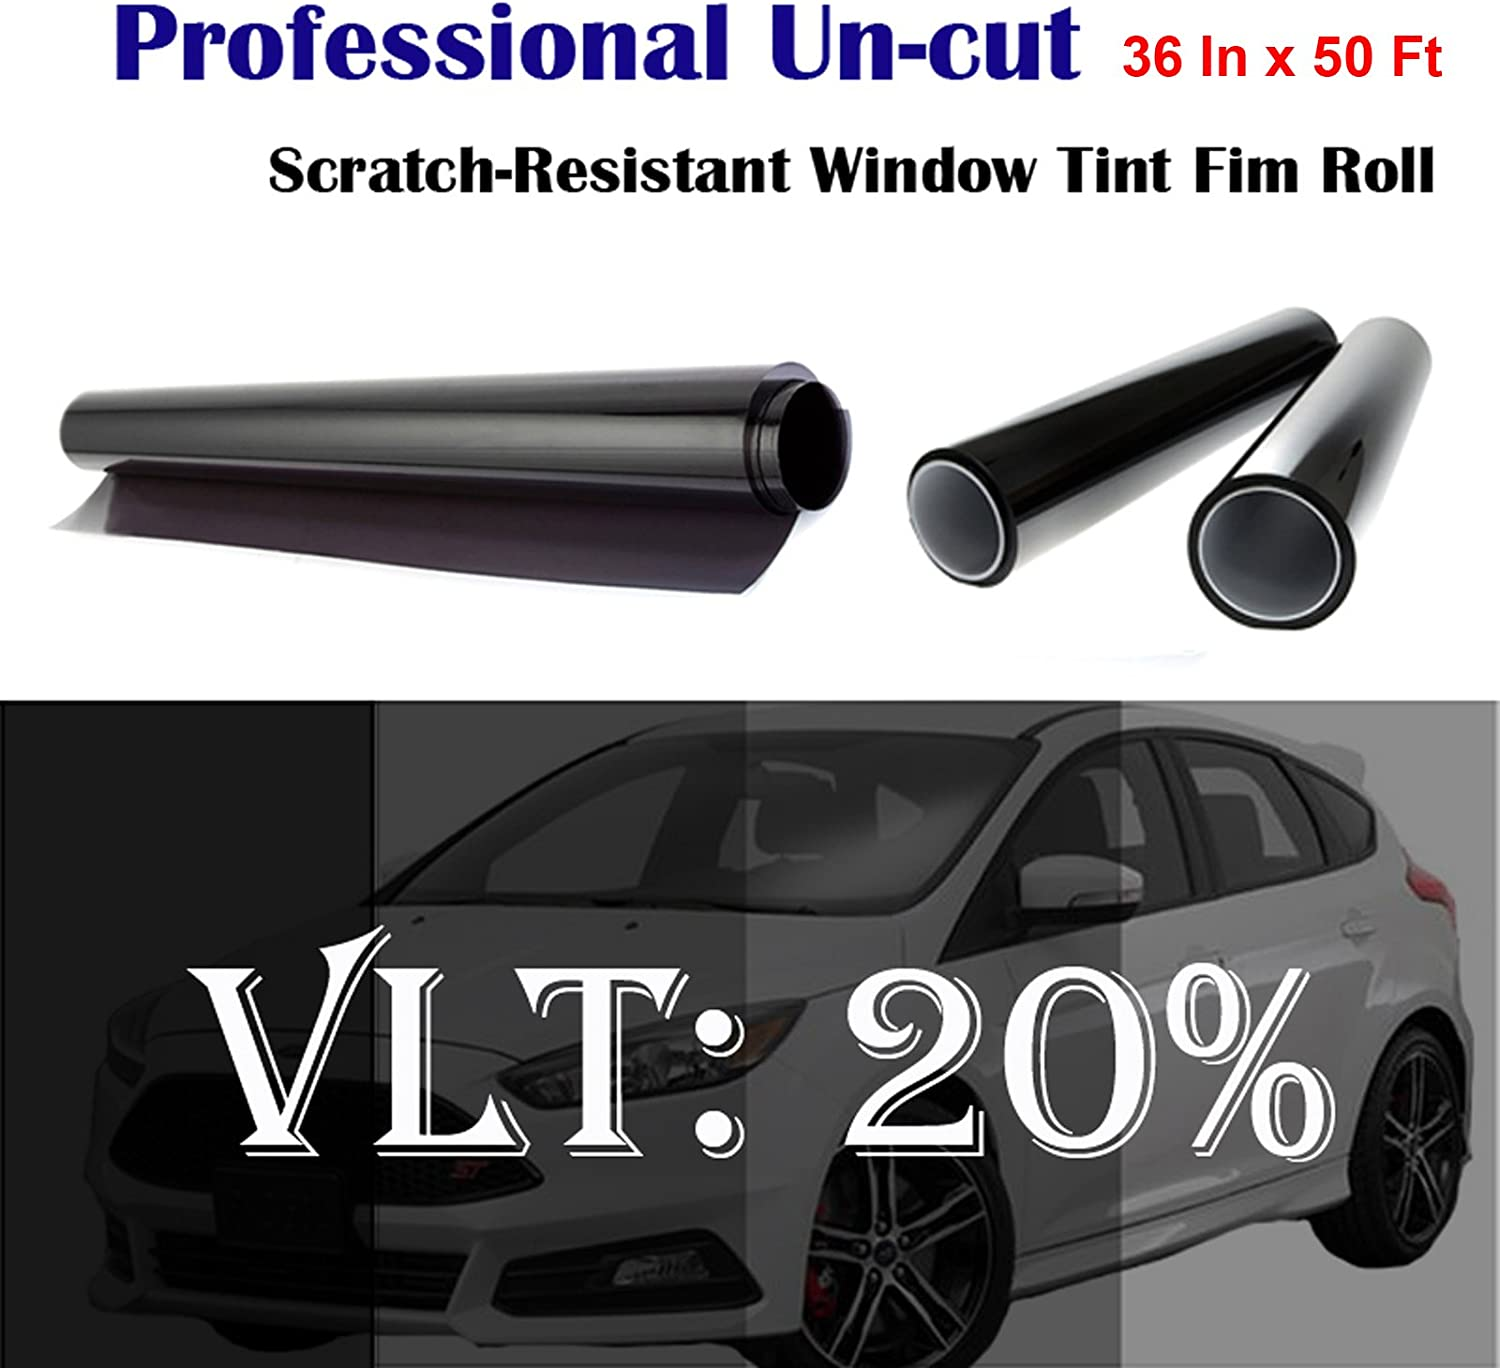 """Mkbrother Uncut Roll Window Tint Film 20% VLT 36"""" in x 50' Ft Feet Car Home Office Glass"""